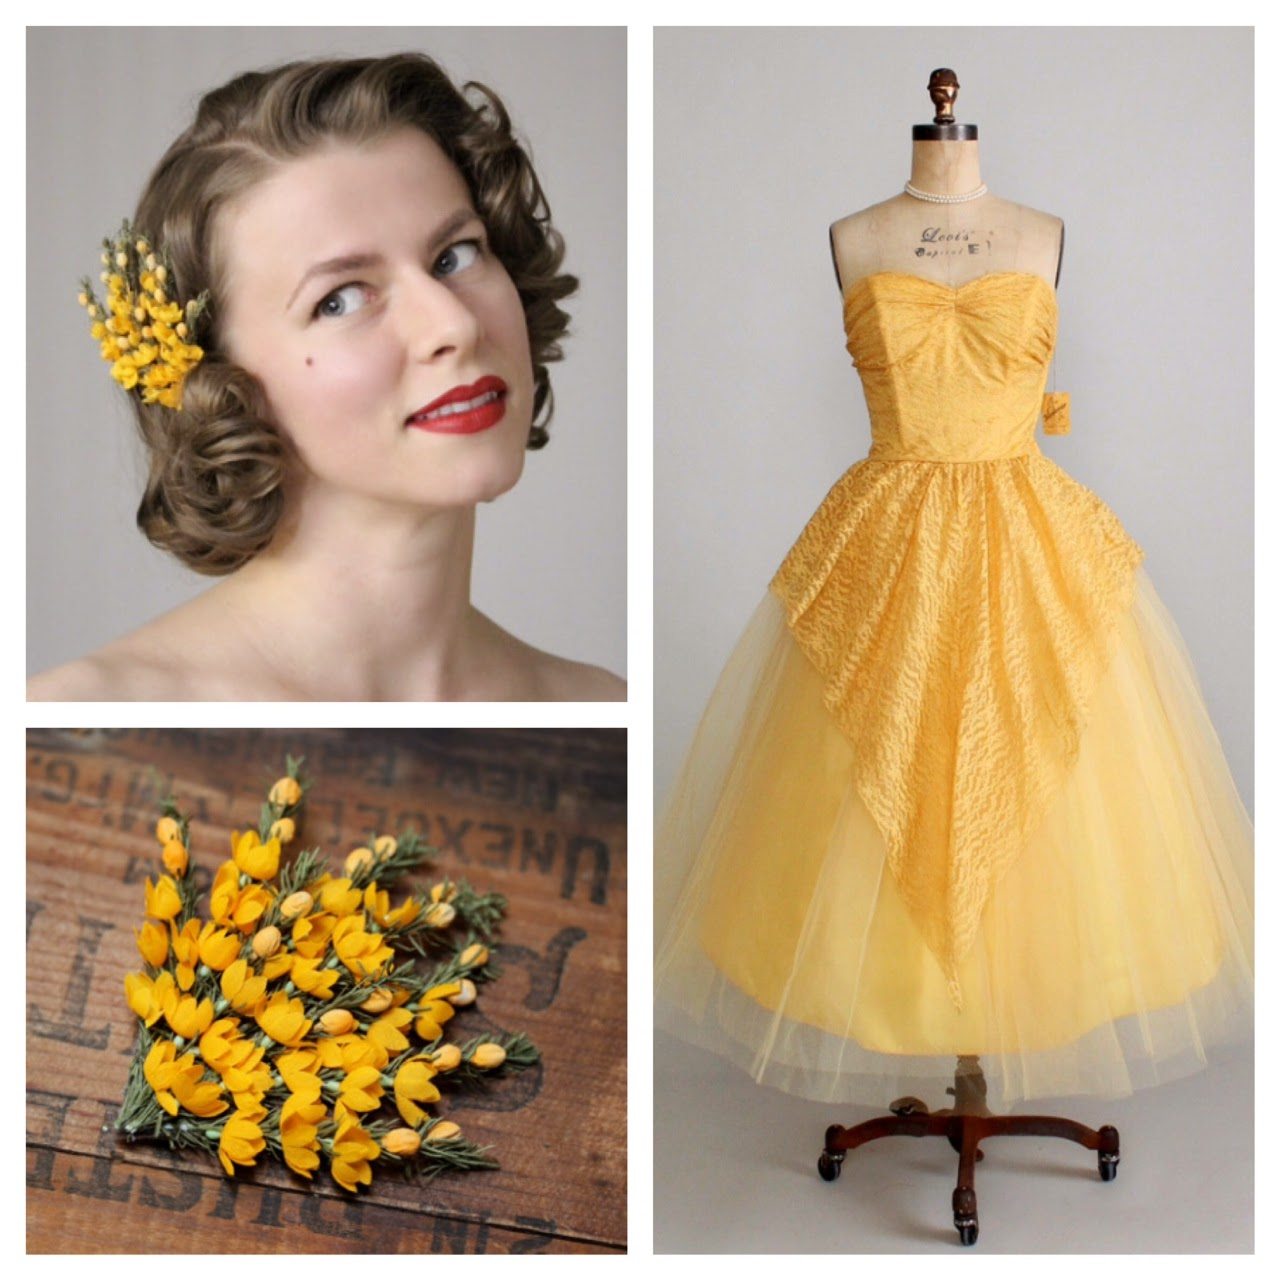 Saffron Sunrise - 1950s golden dress pairing #1950s #dress #gold #saffron #yellow